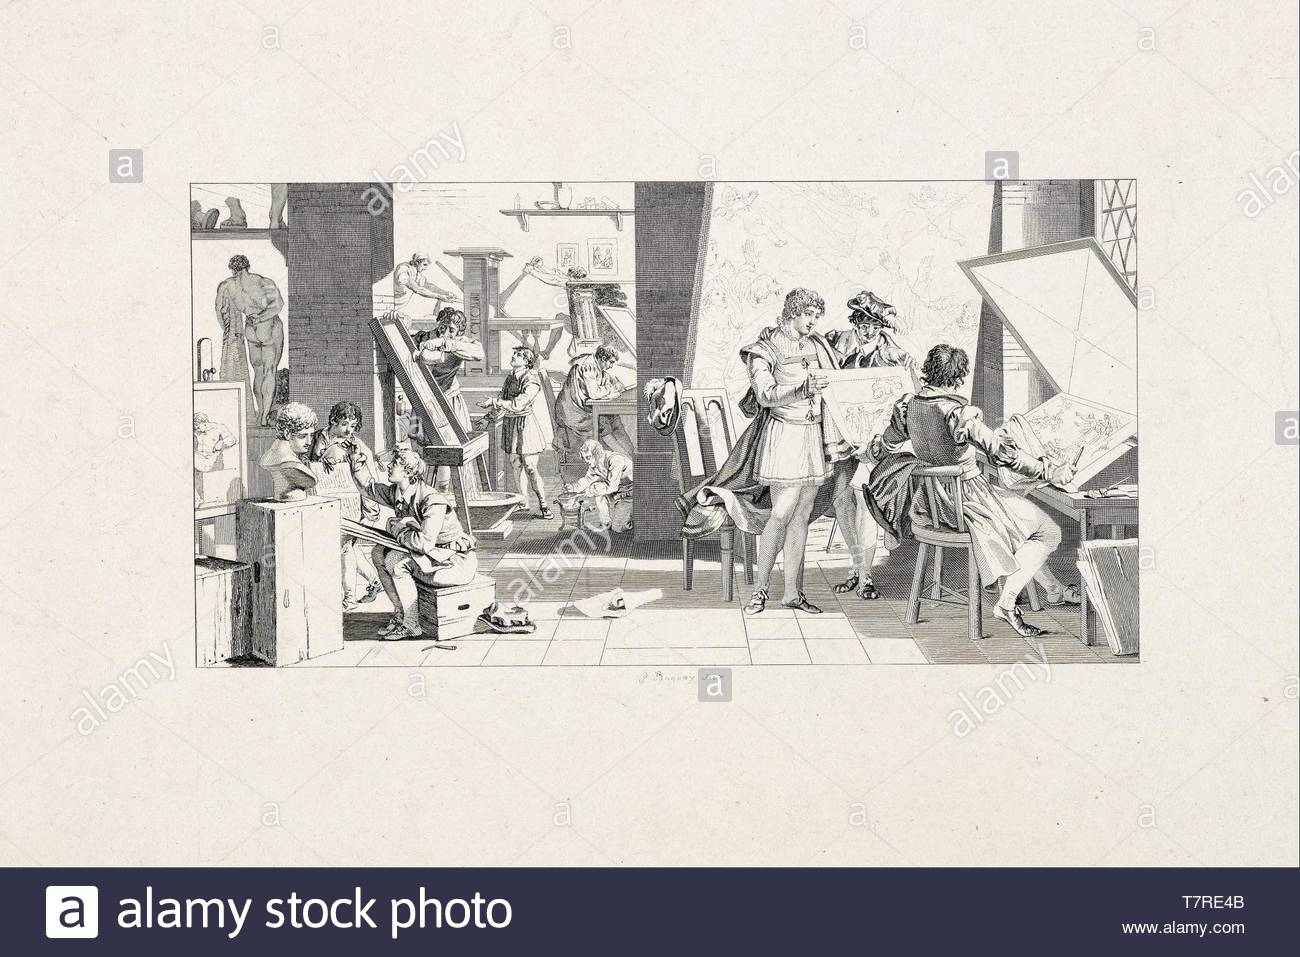 Pierre-Charles-Baquoy-Studio of a Printmaker - Stock Image